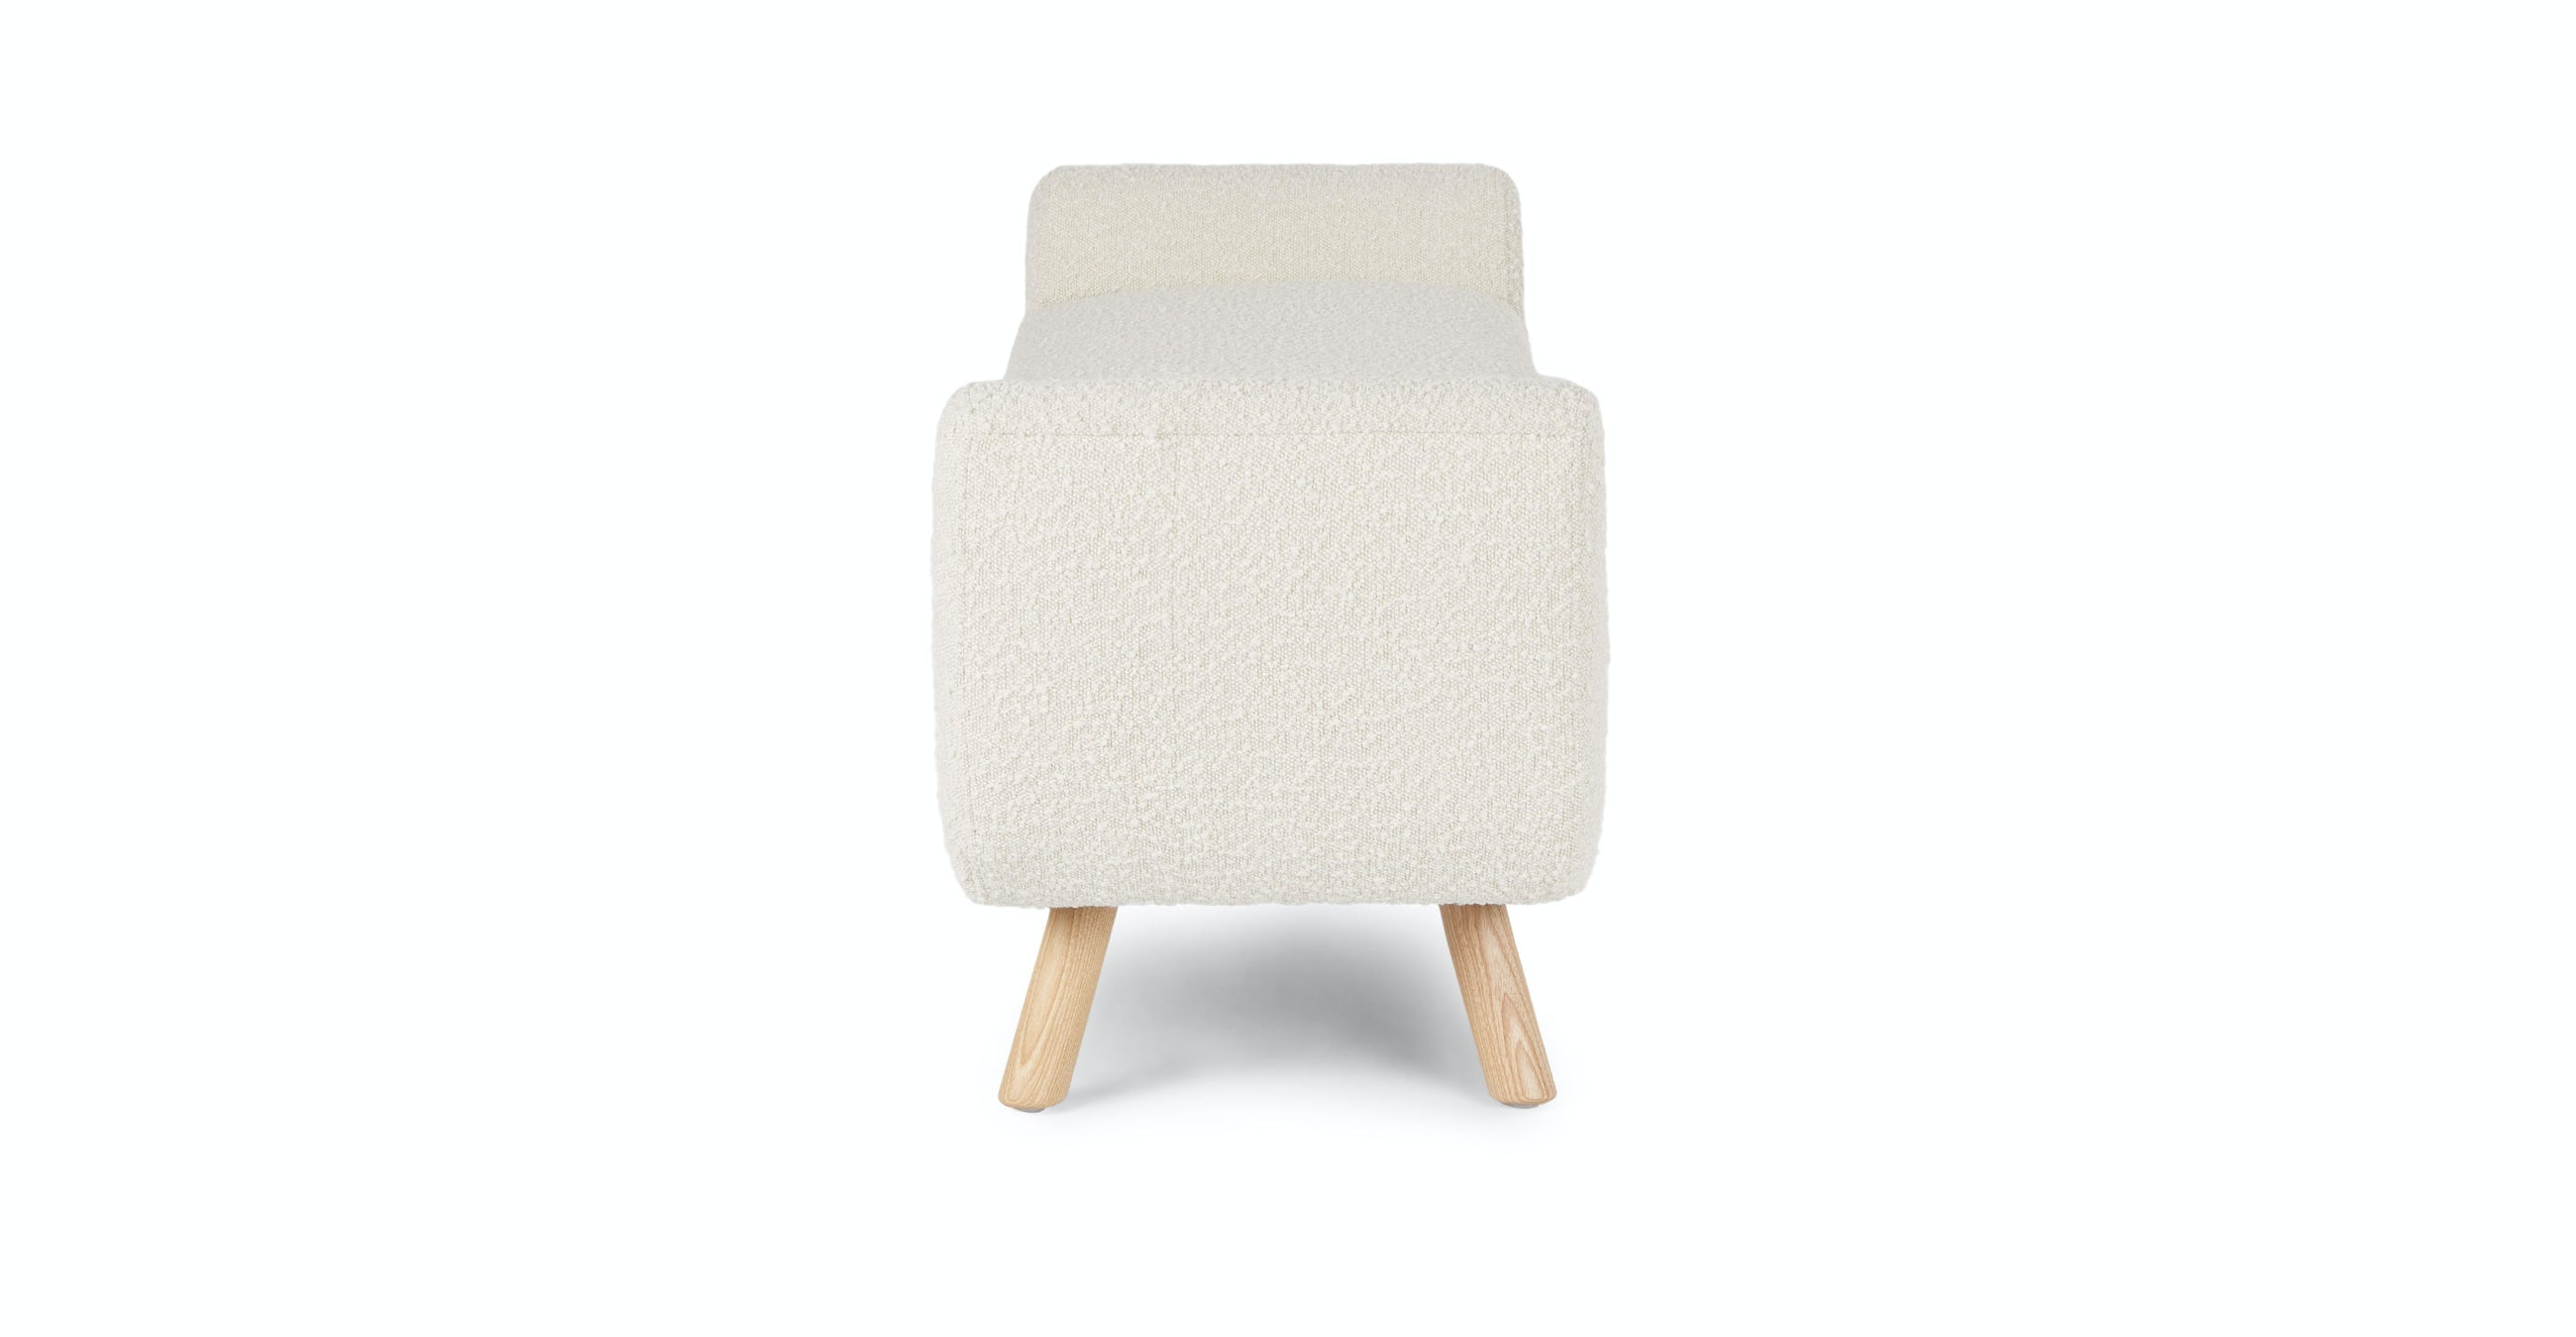 Gabriola Ivory Boucle Bench RESTOCK Mid May 2021